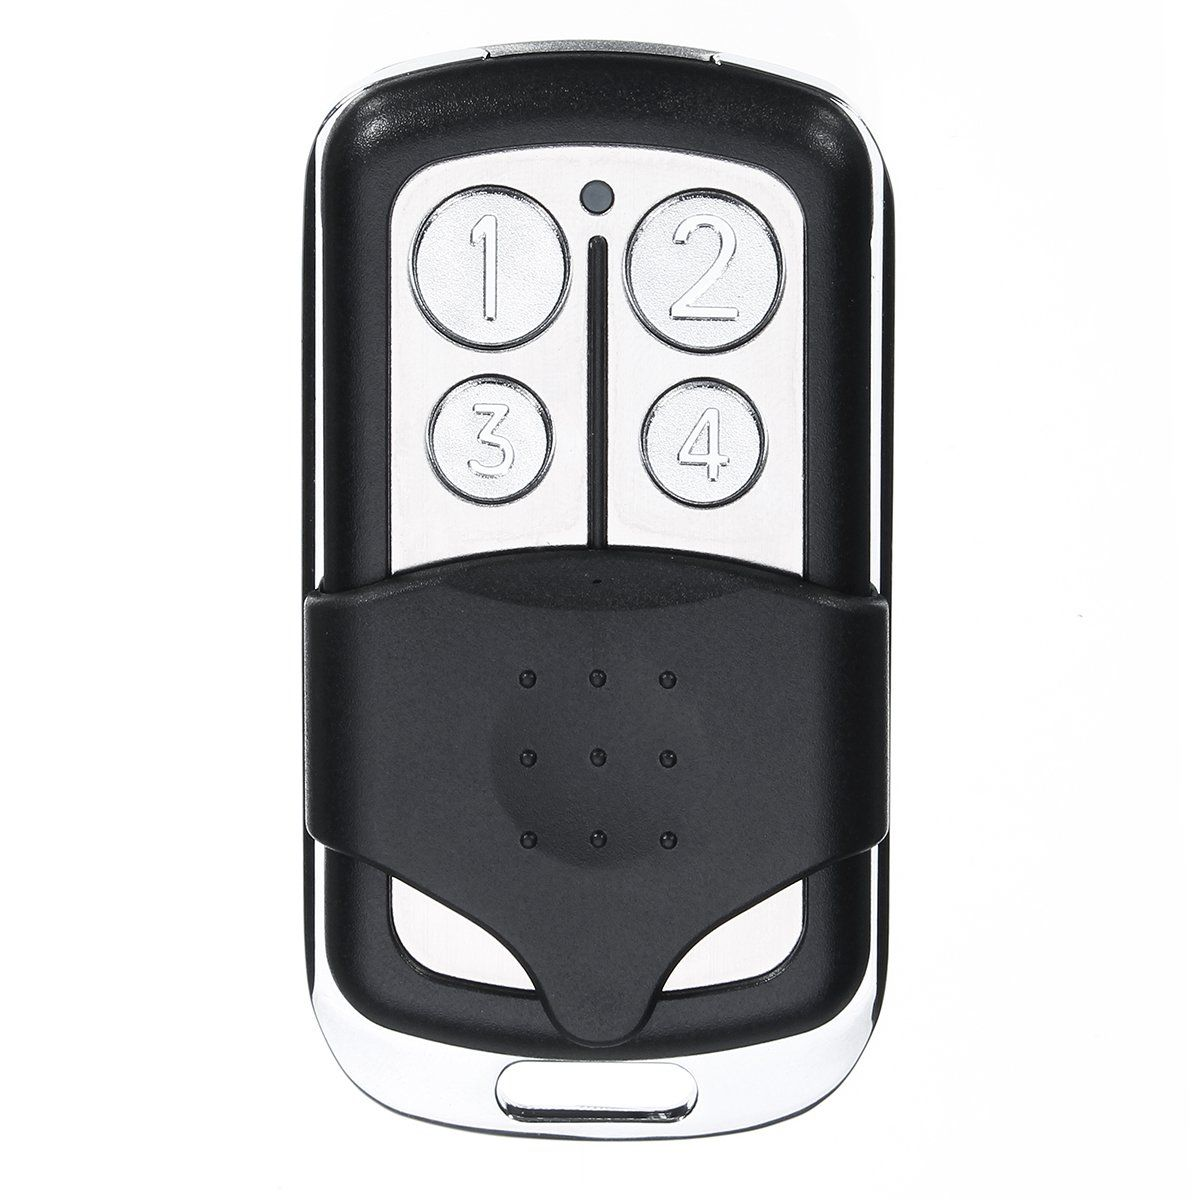 4 Buttons 390mhz Garage Door Gate Remote Control Key For